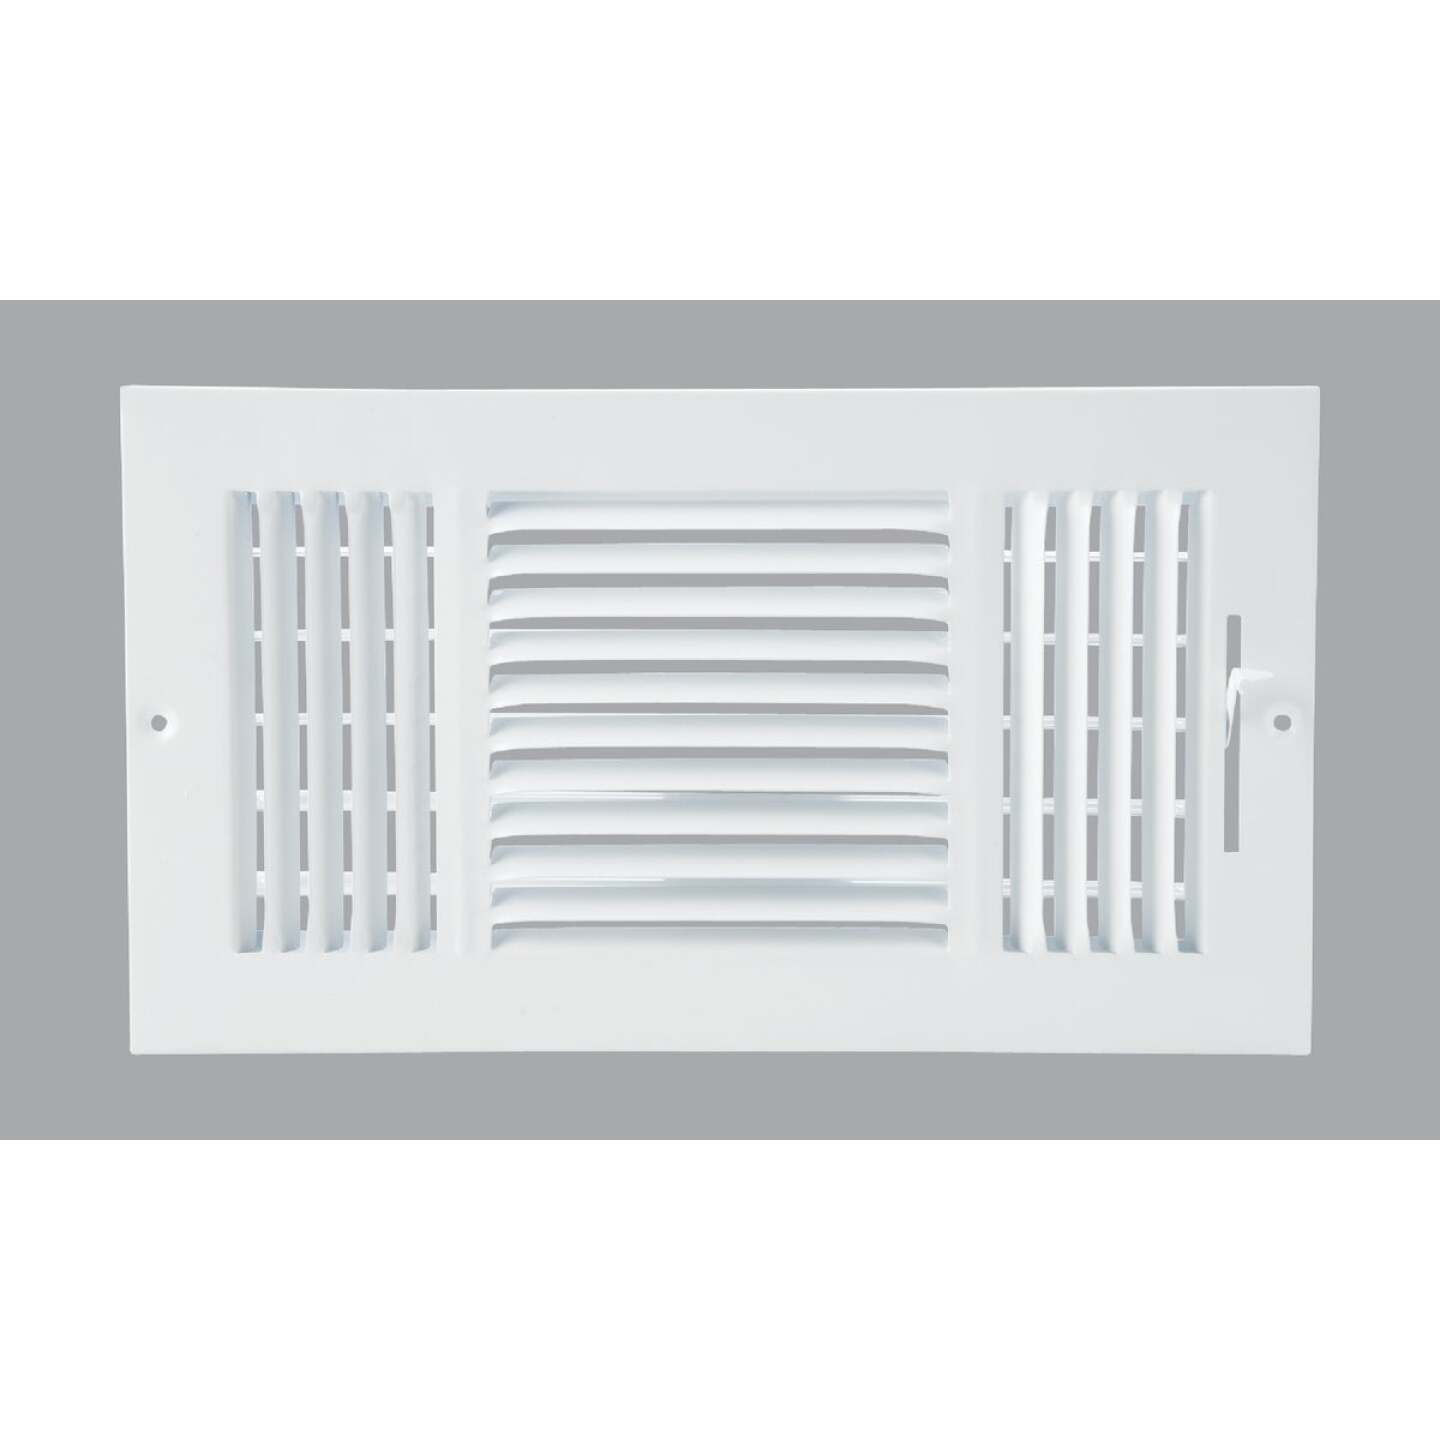 Home Impressions White Steel 7.76 In. Wall Register Image 1